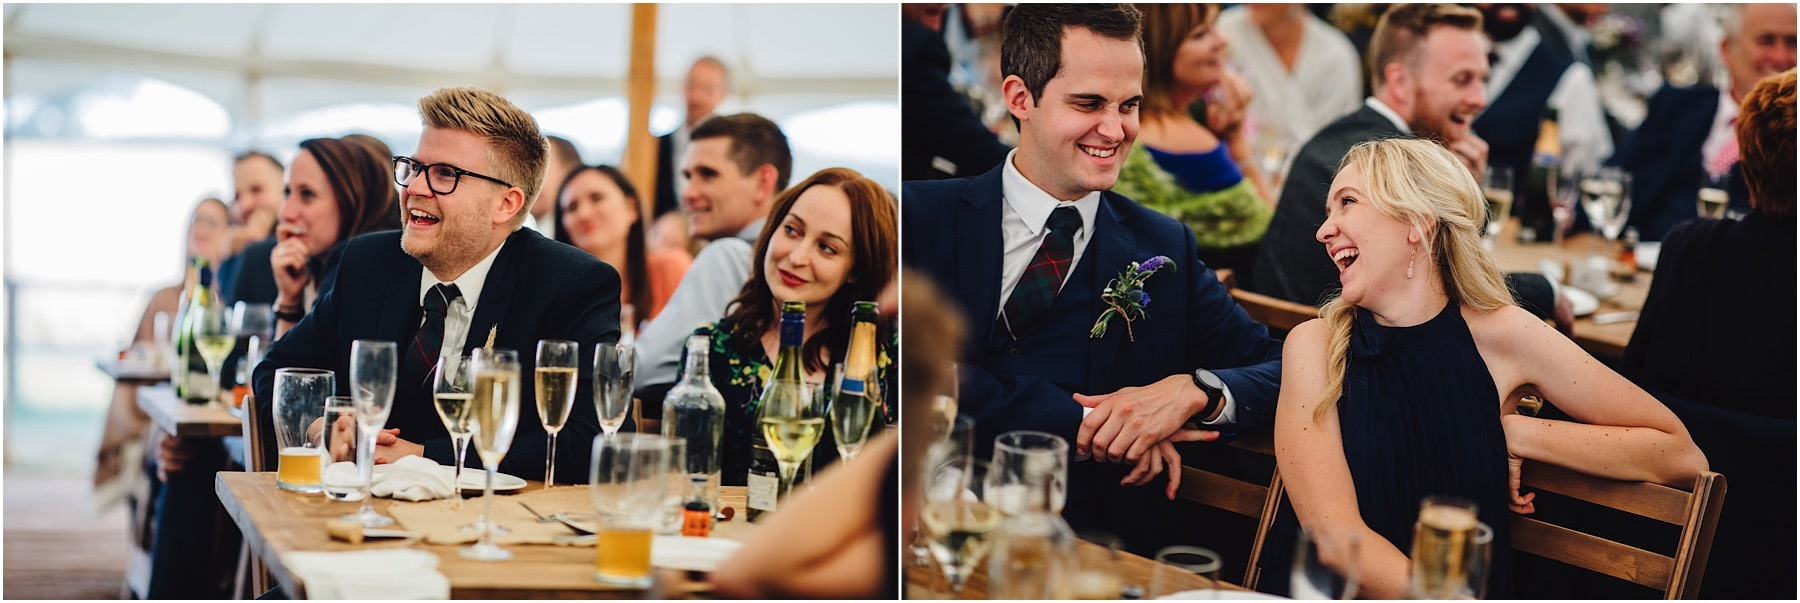 wedding guests laughing at funny wedding speech